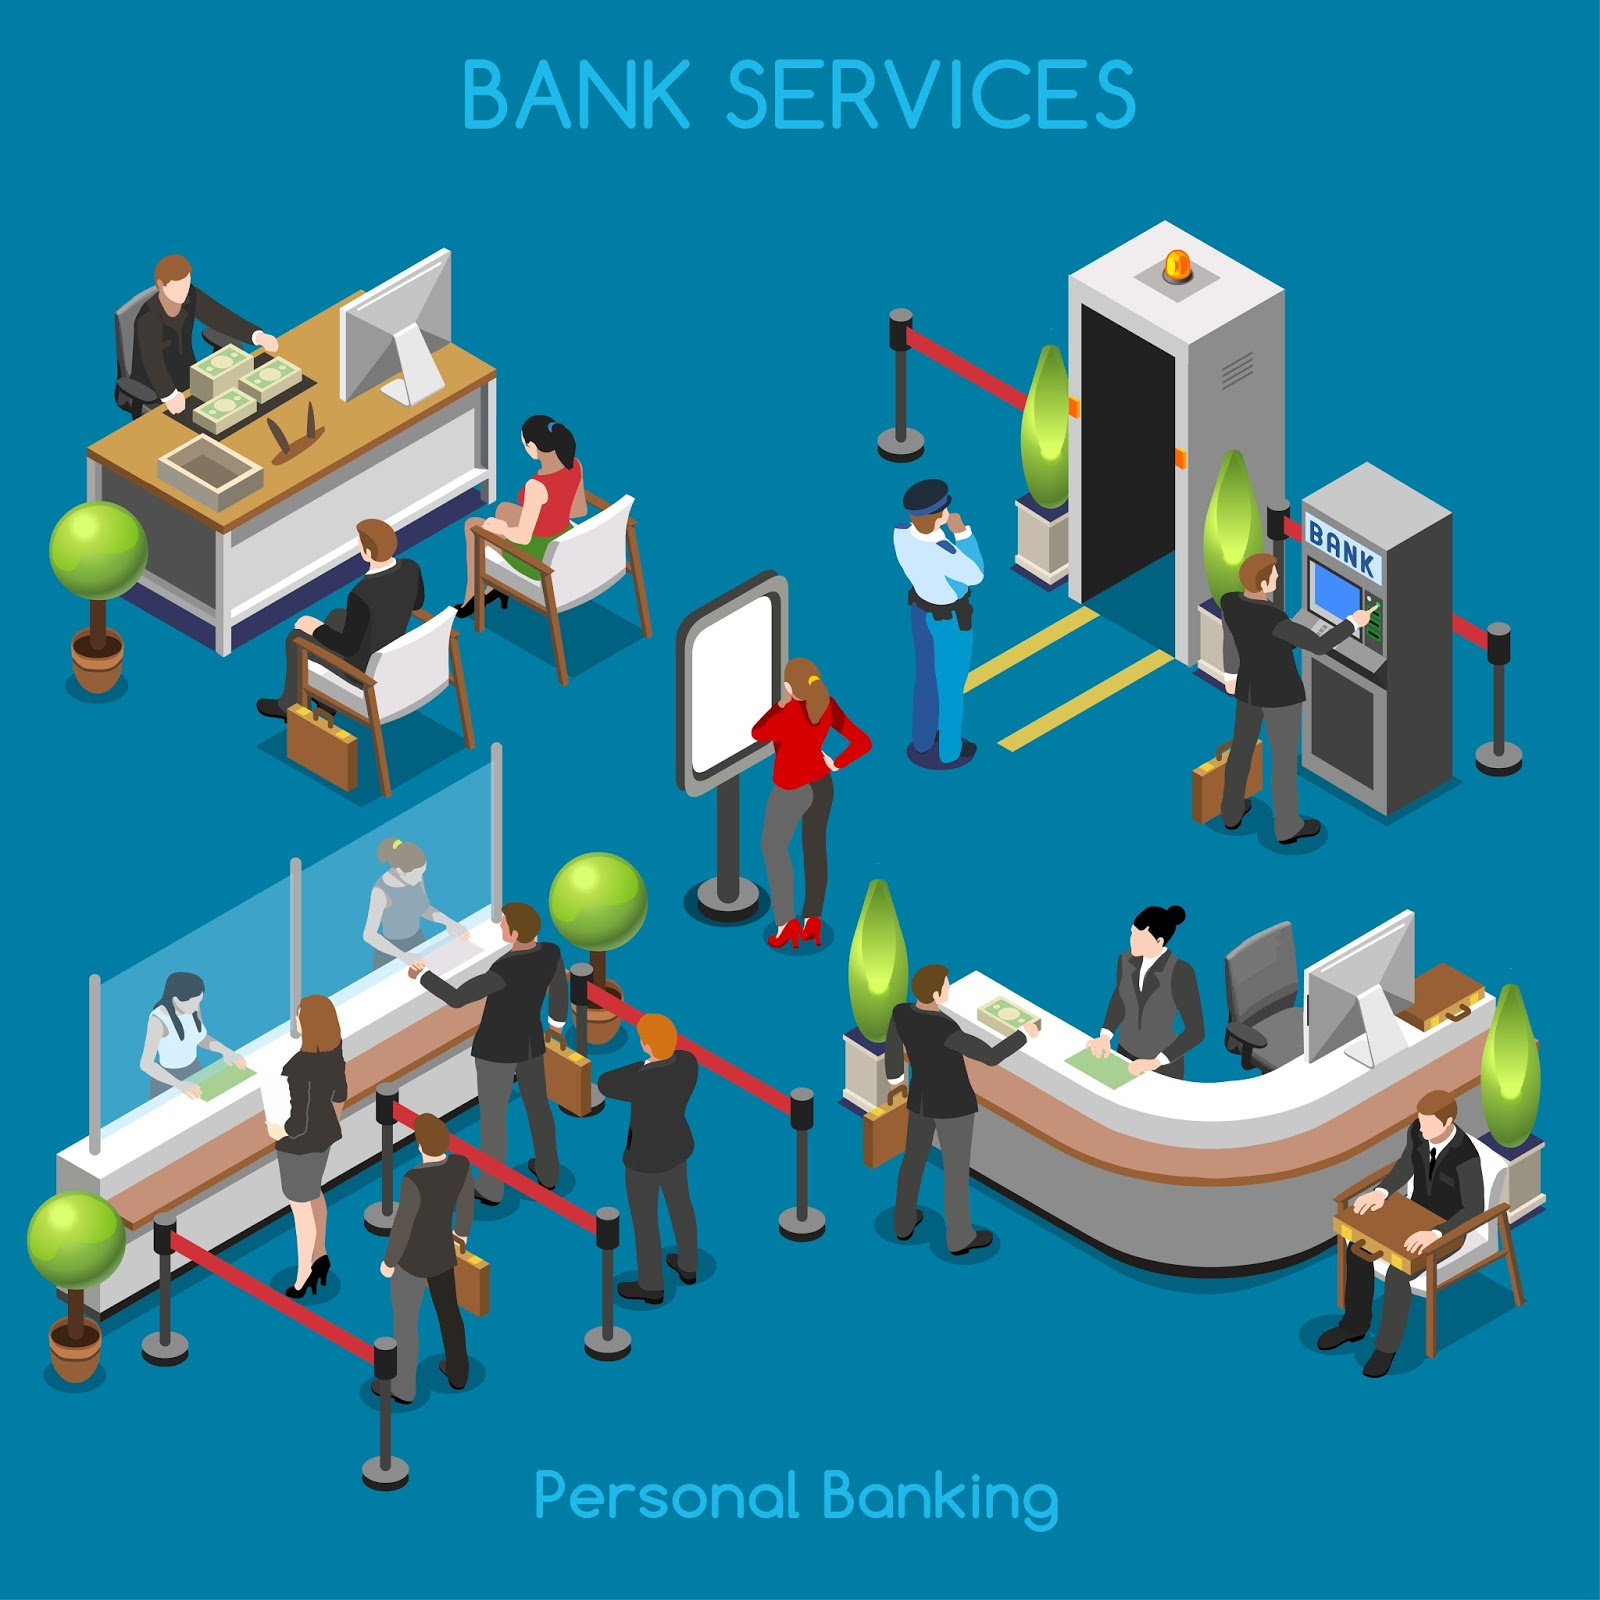 PERSONAL BANKING: TAILOR-MADE FOR YOU